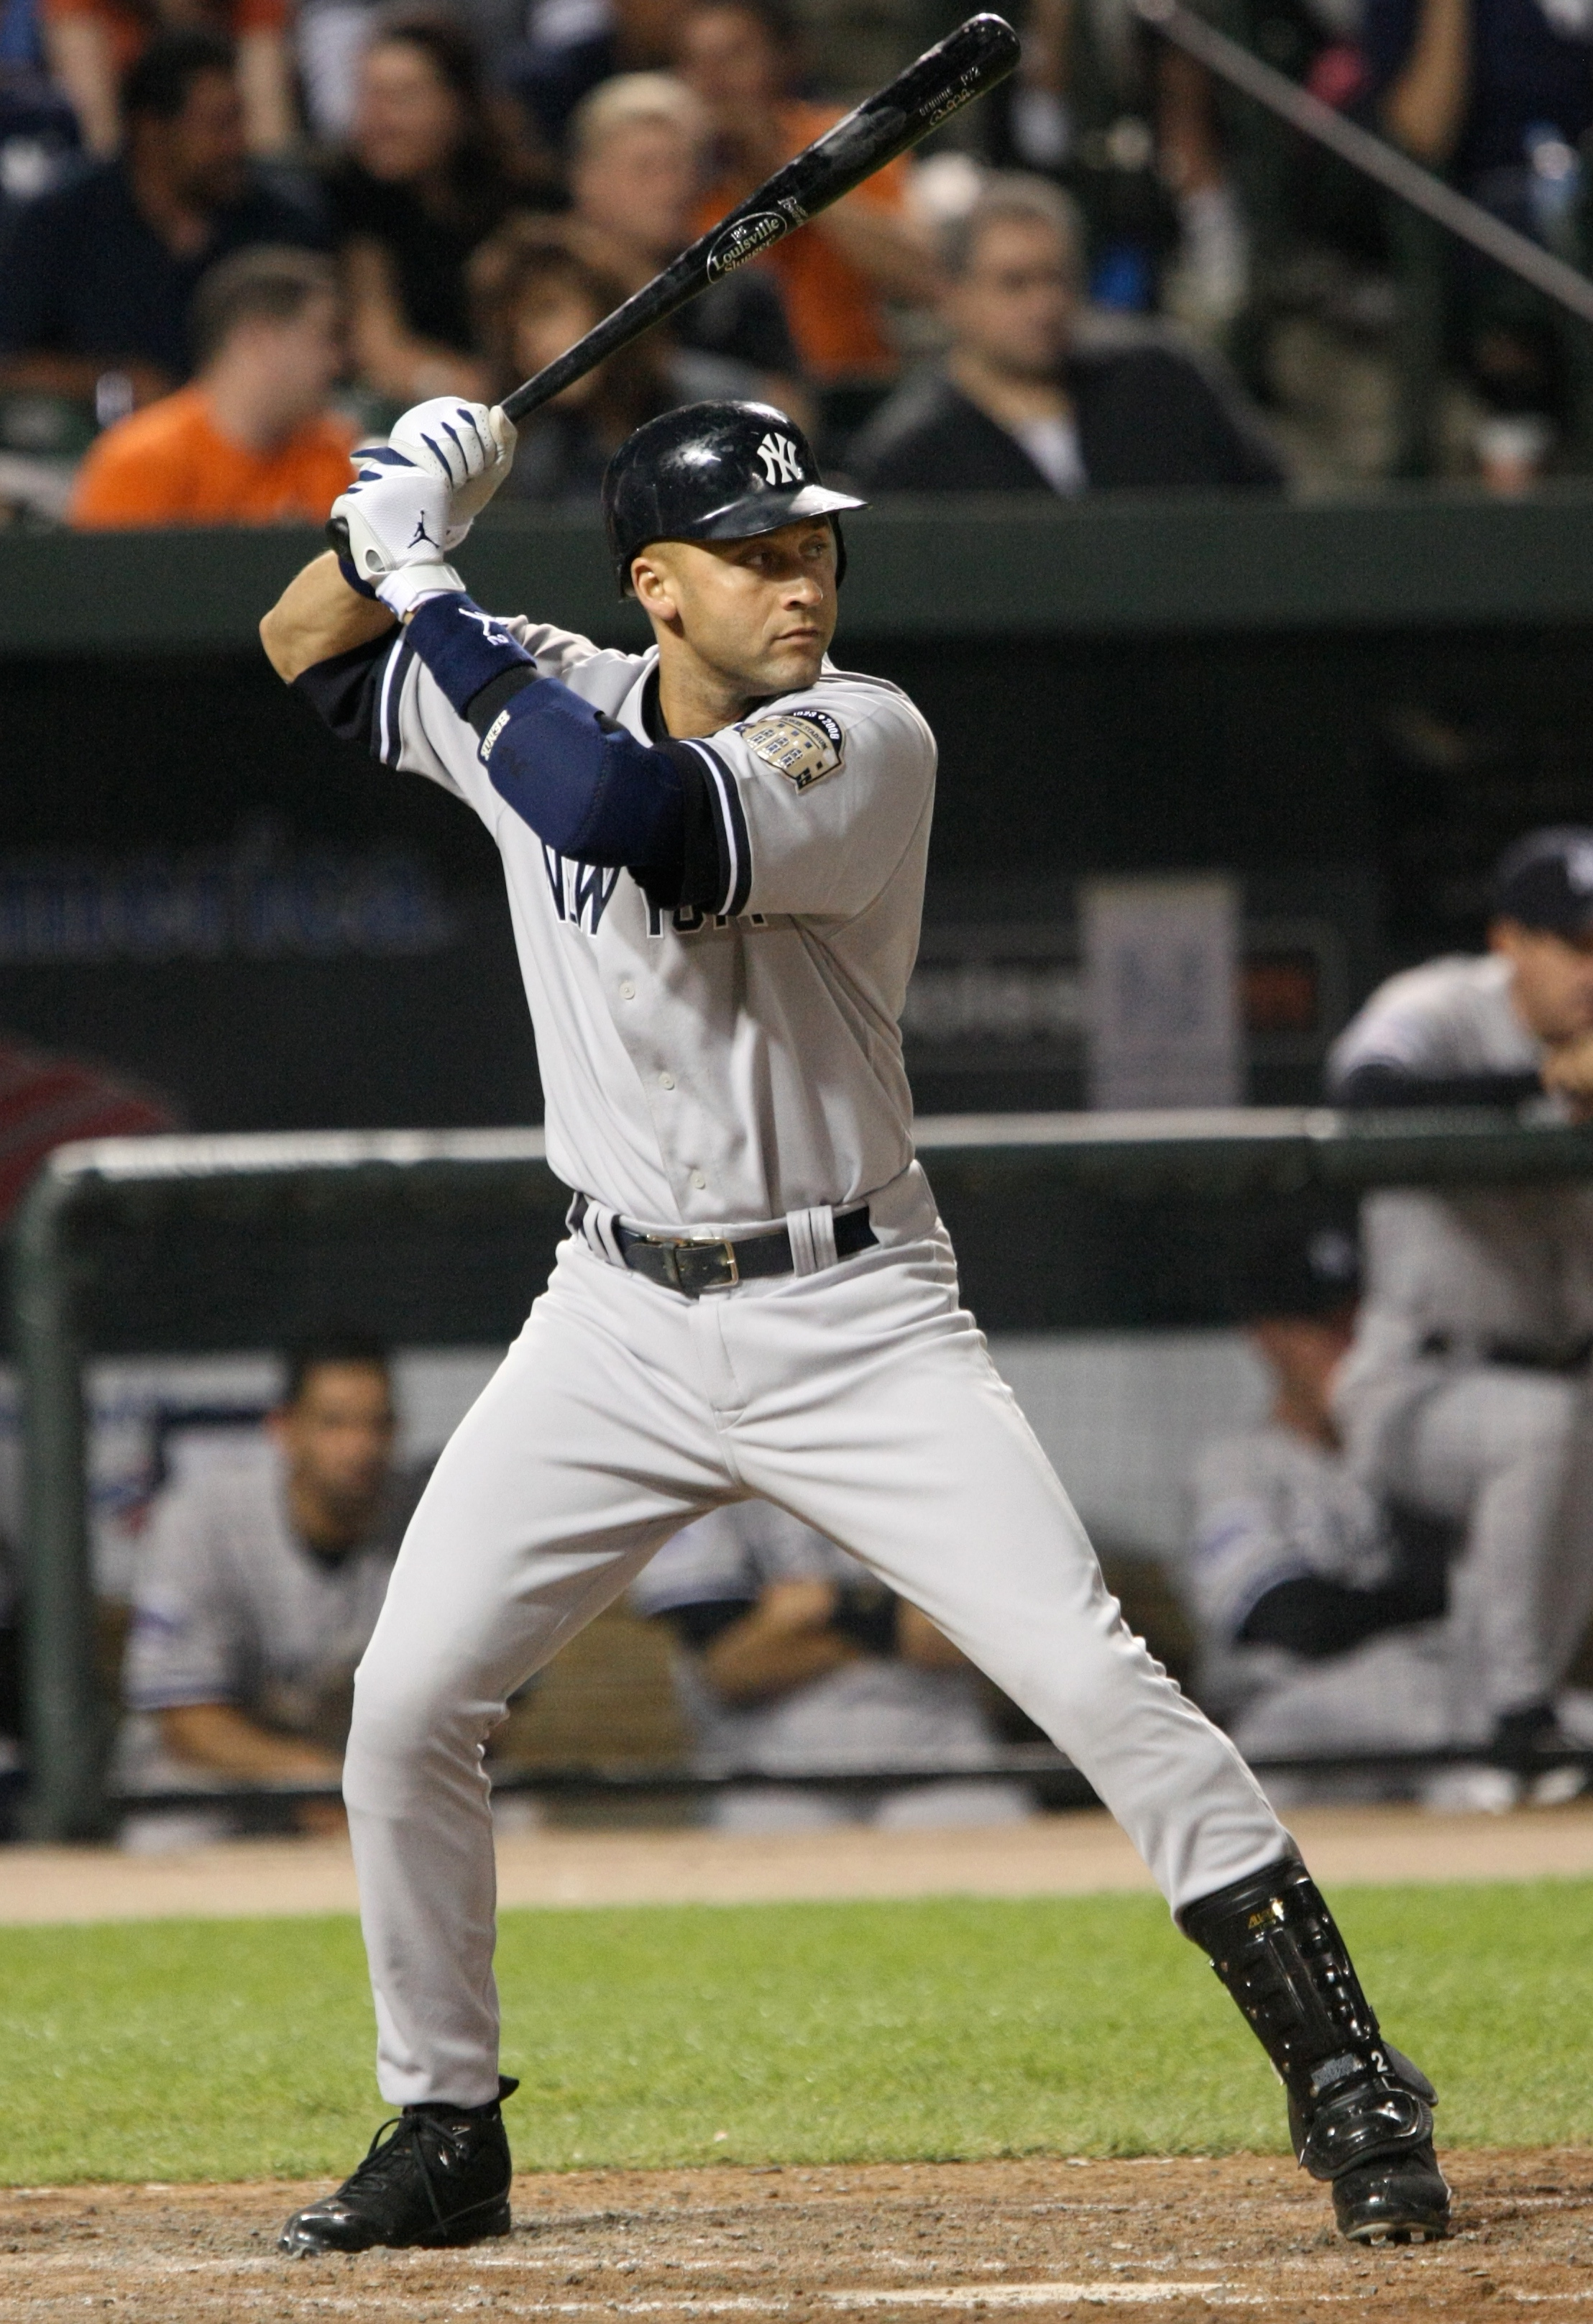 Derek jeter wikipedia a man in a grey baseball uniform with a navy helmet prepares to swing at a malvernweather Gallery